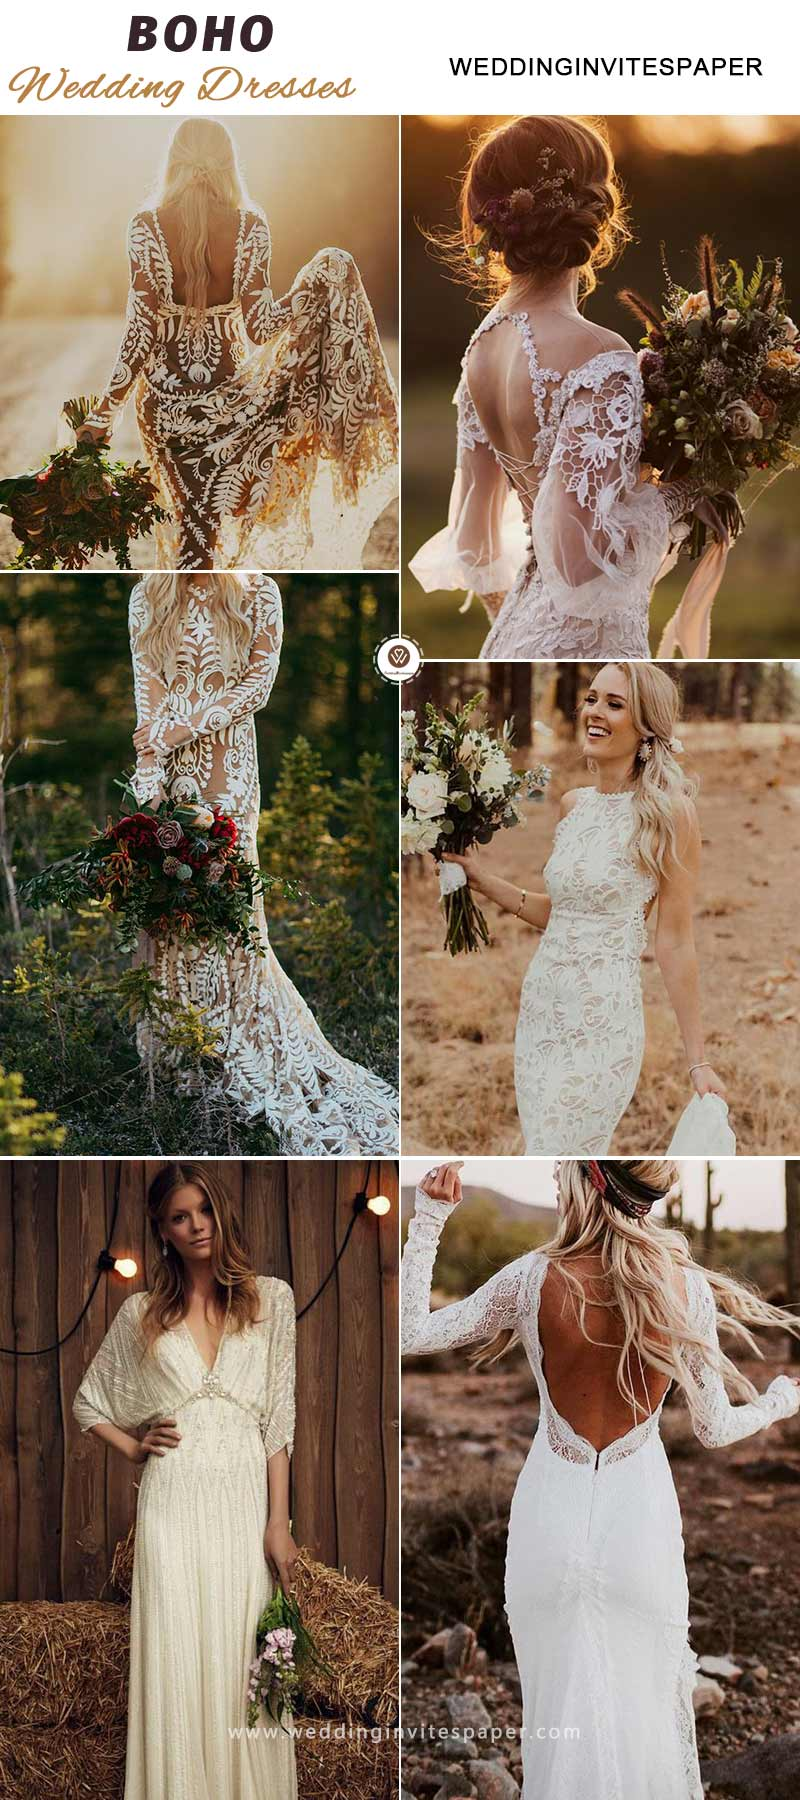 boho-wedding-dress.jpg